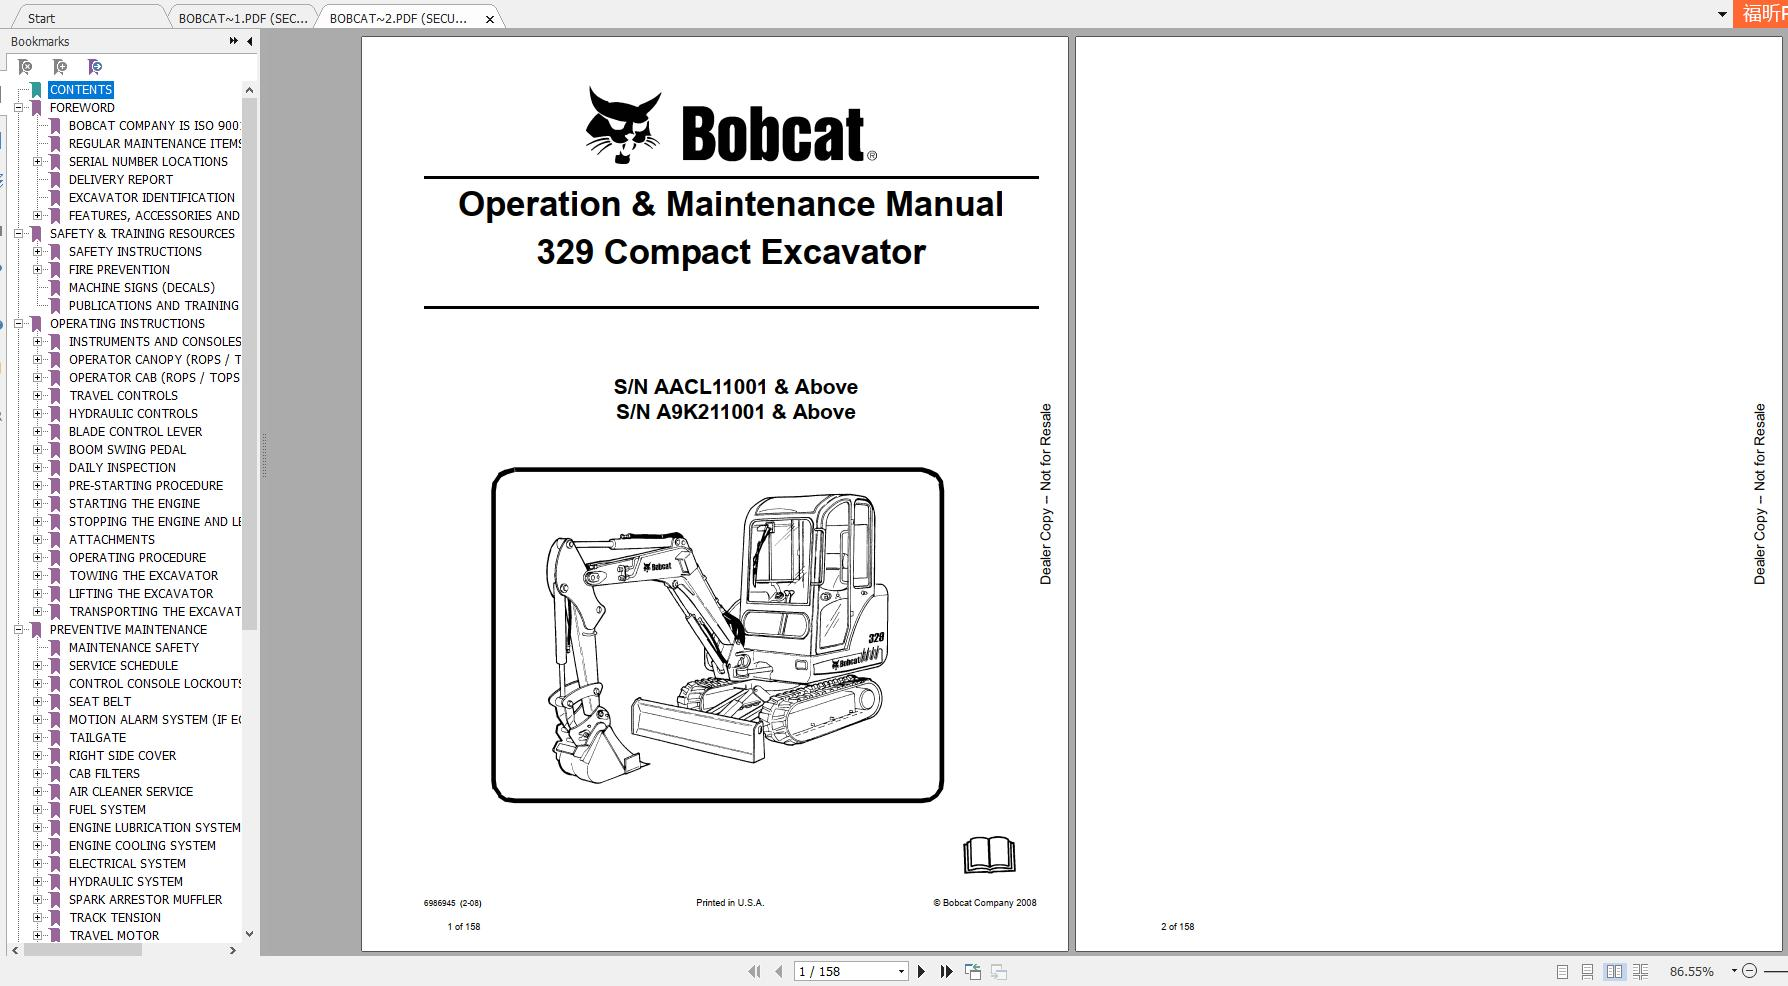 Bobcat Compact Excavator 329 Operation & Maintenance